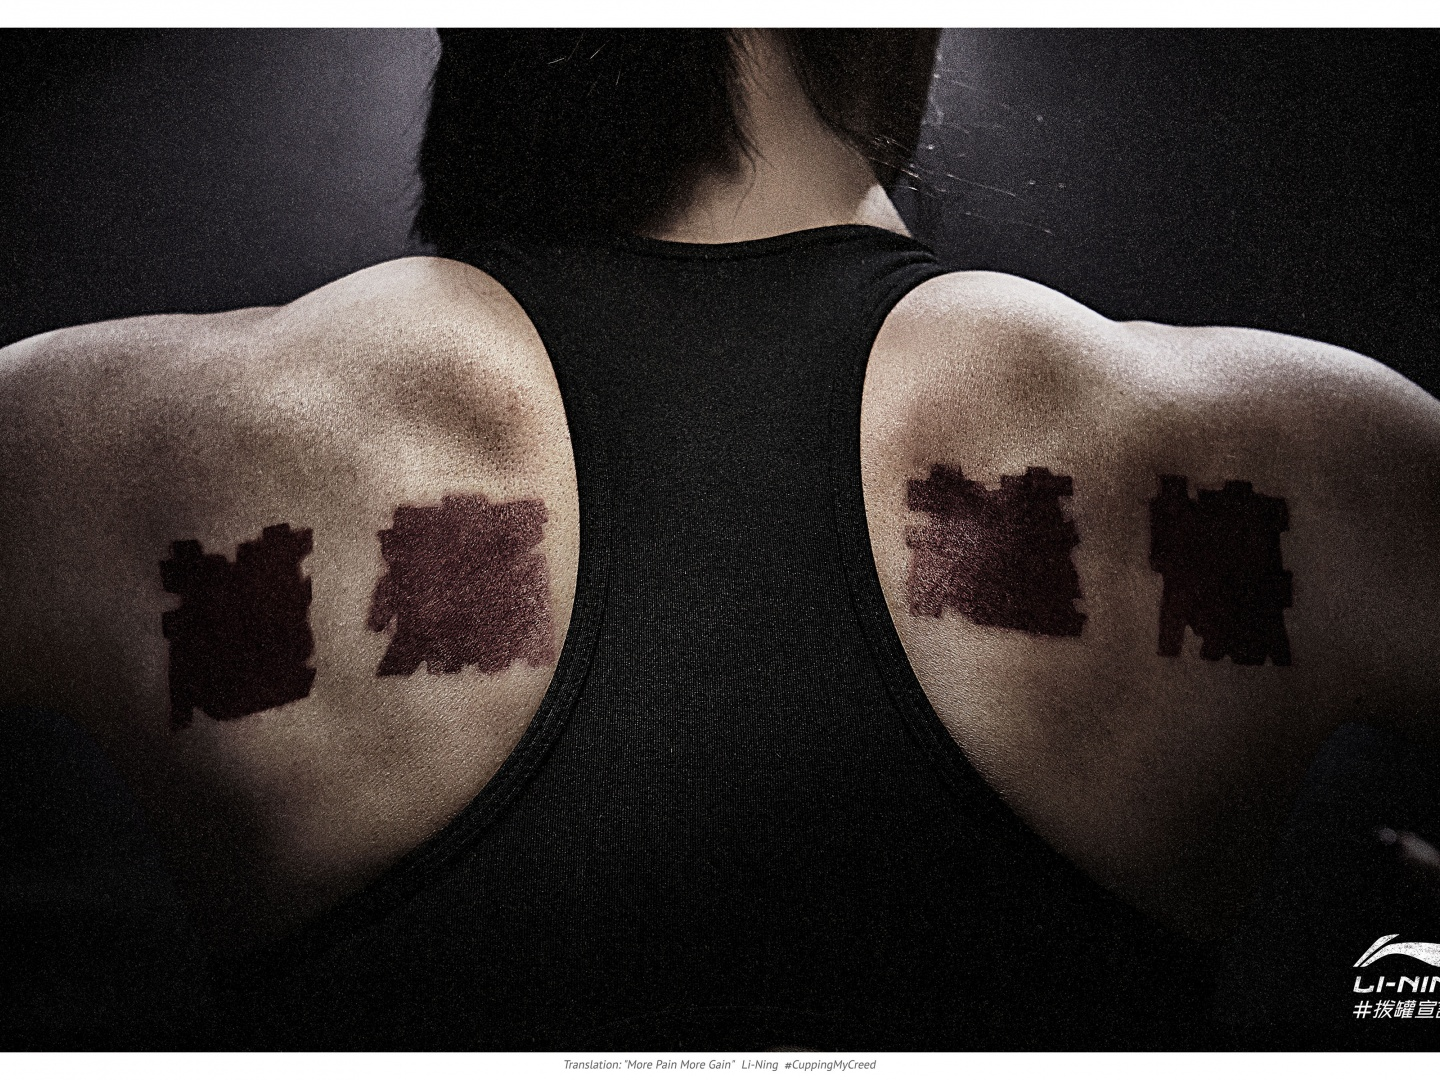 Image for #CuppingMyCreed - More Pain More Gain